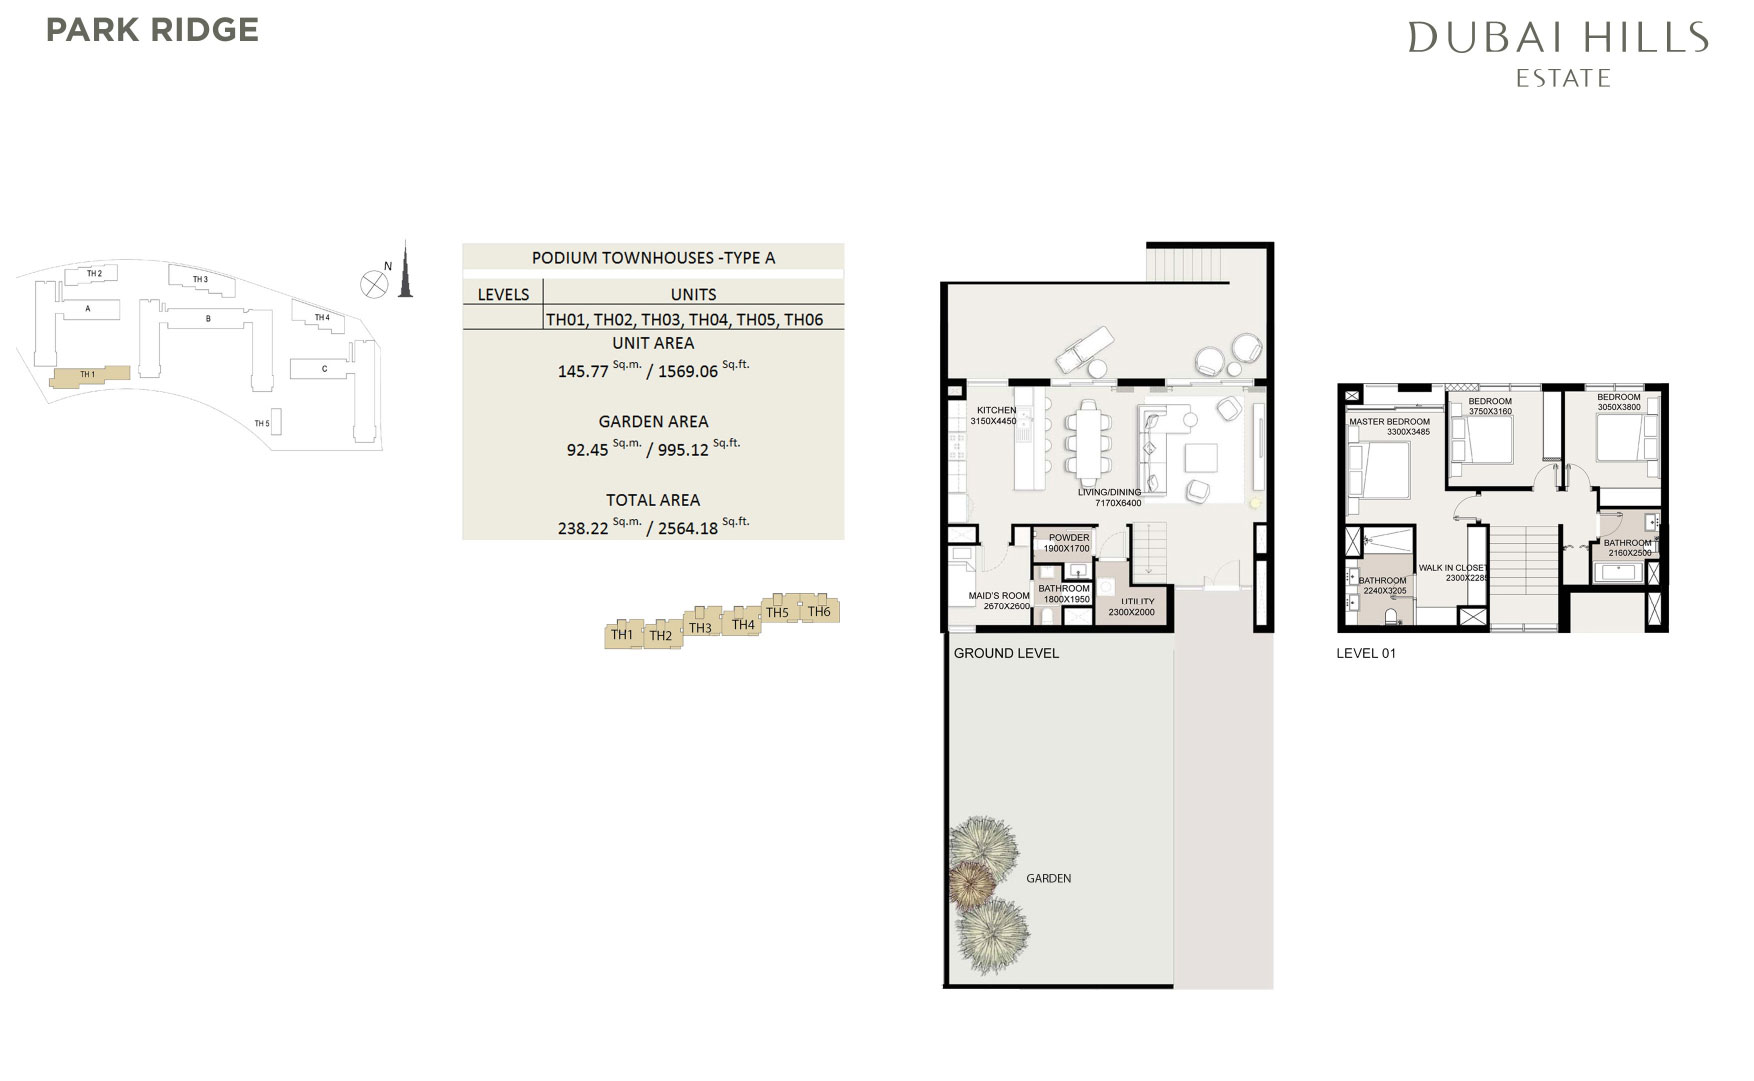 Podium Townhouses 2564 18sqft